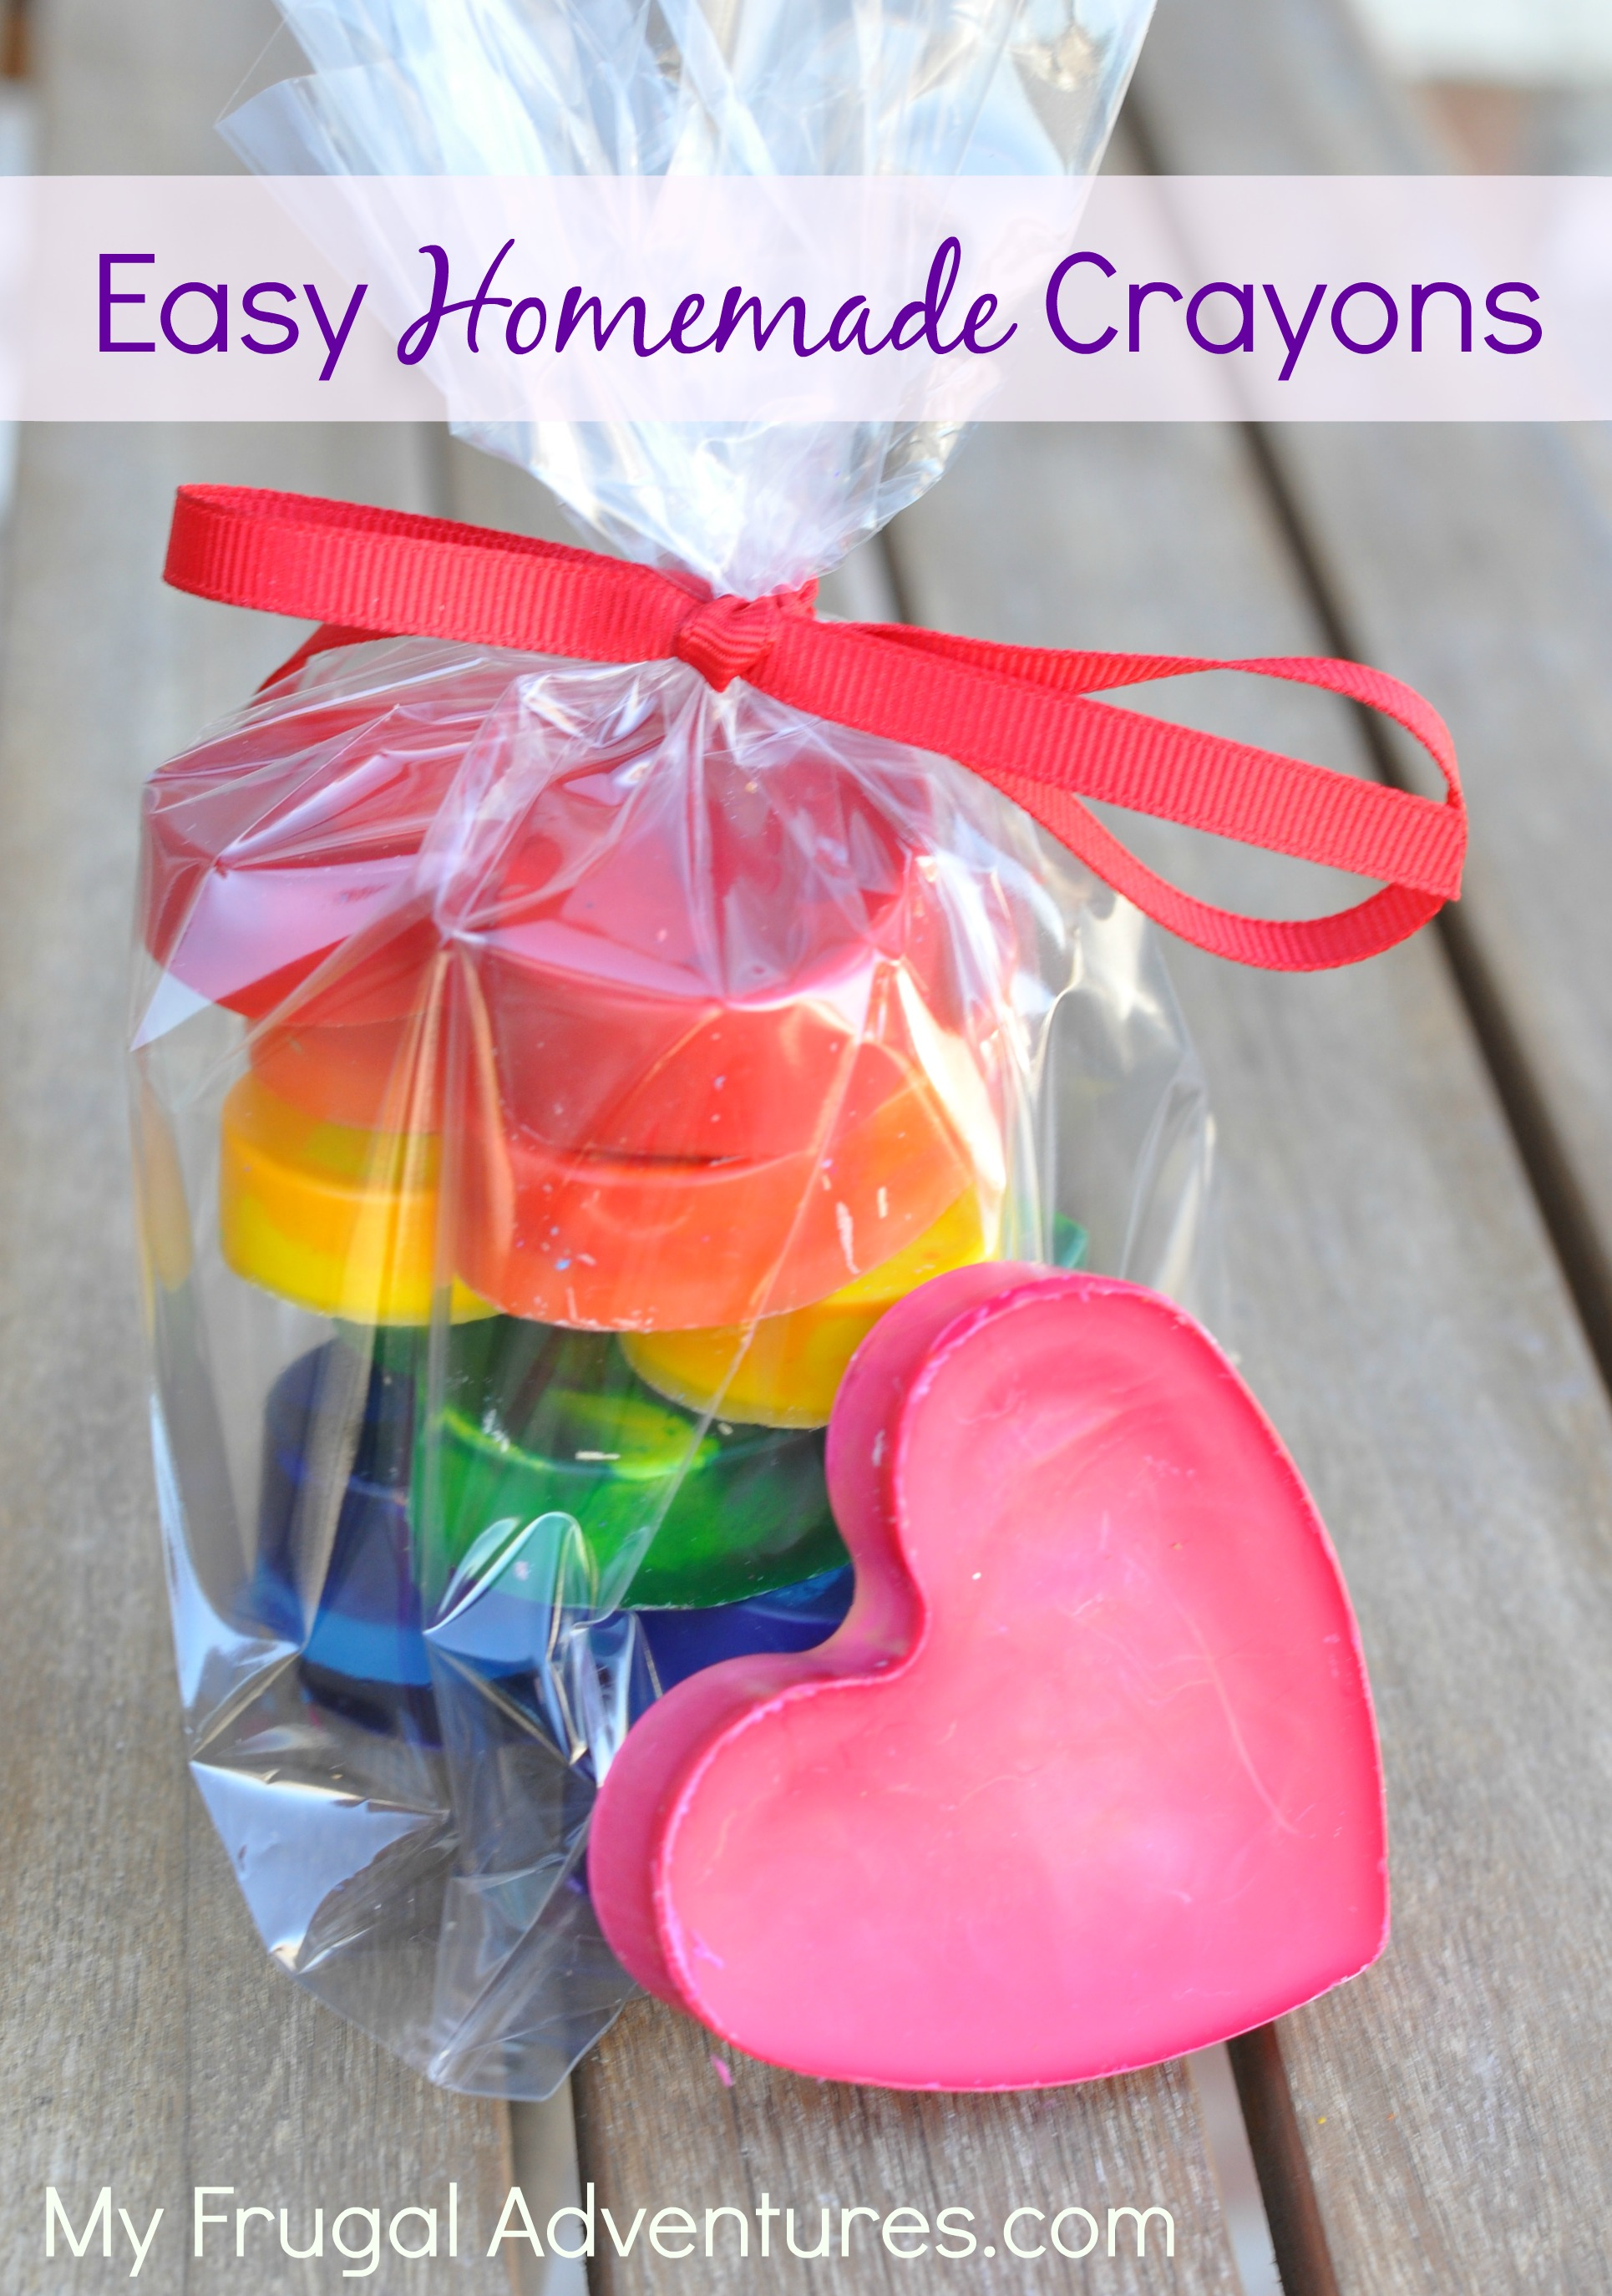 Fast and Easy Homemade Crayons {Perfect Gift Idea} - My Frugal ...